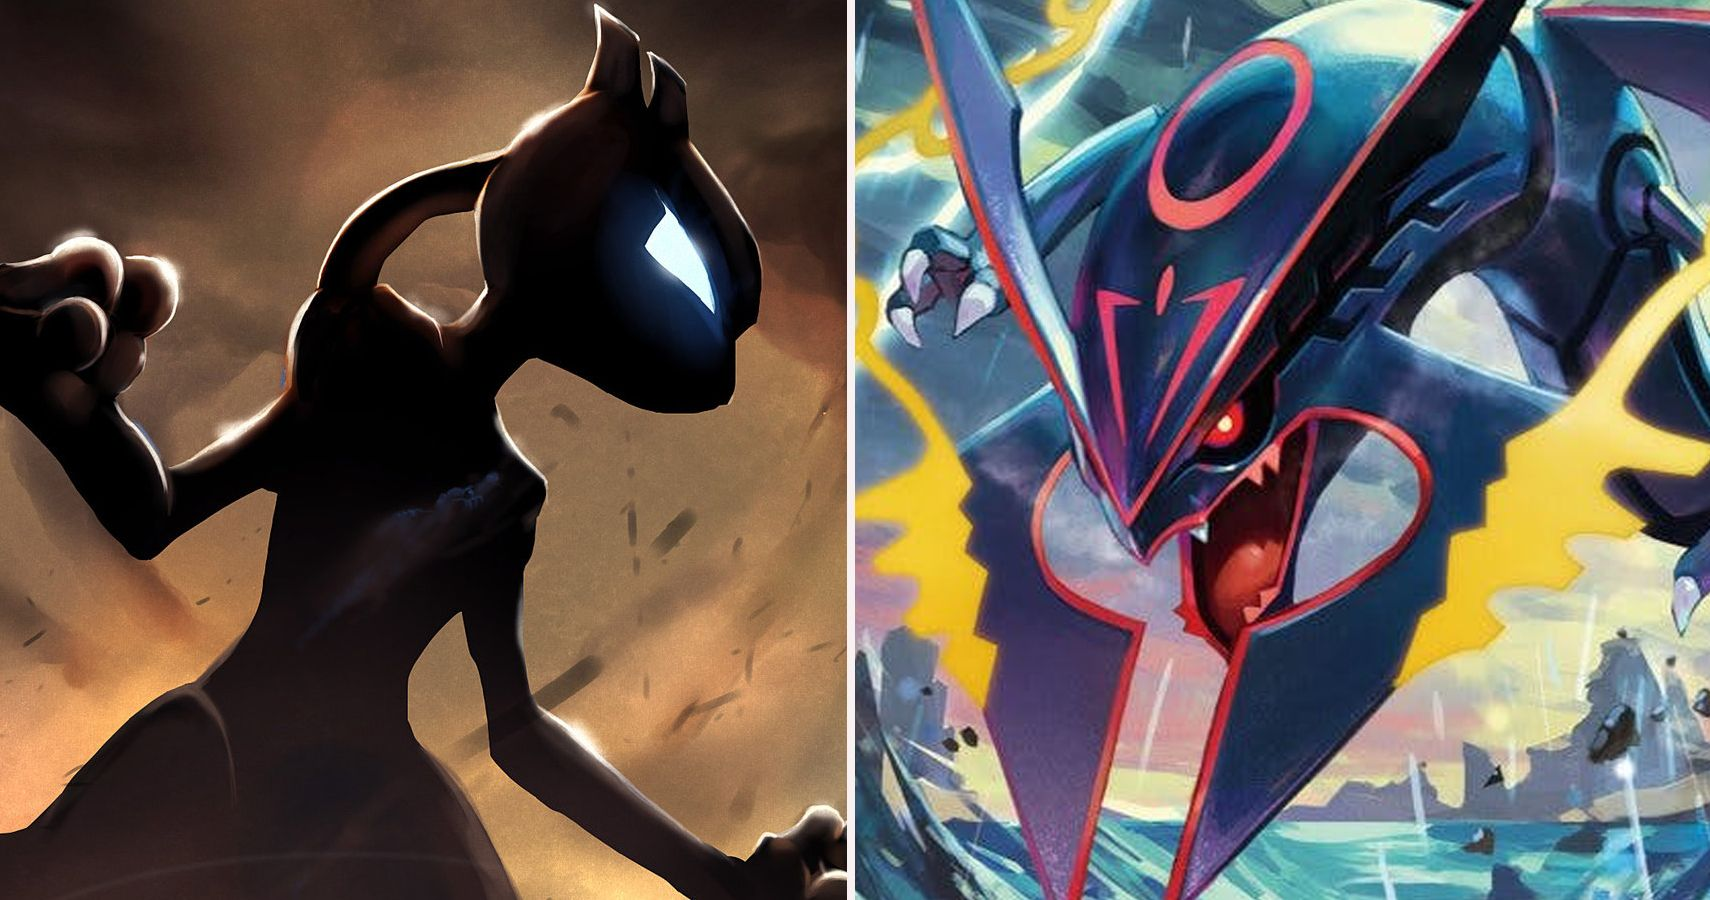 The Best Legendary Pokémon And Some Only Weak Trainers Pick